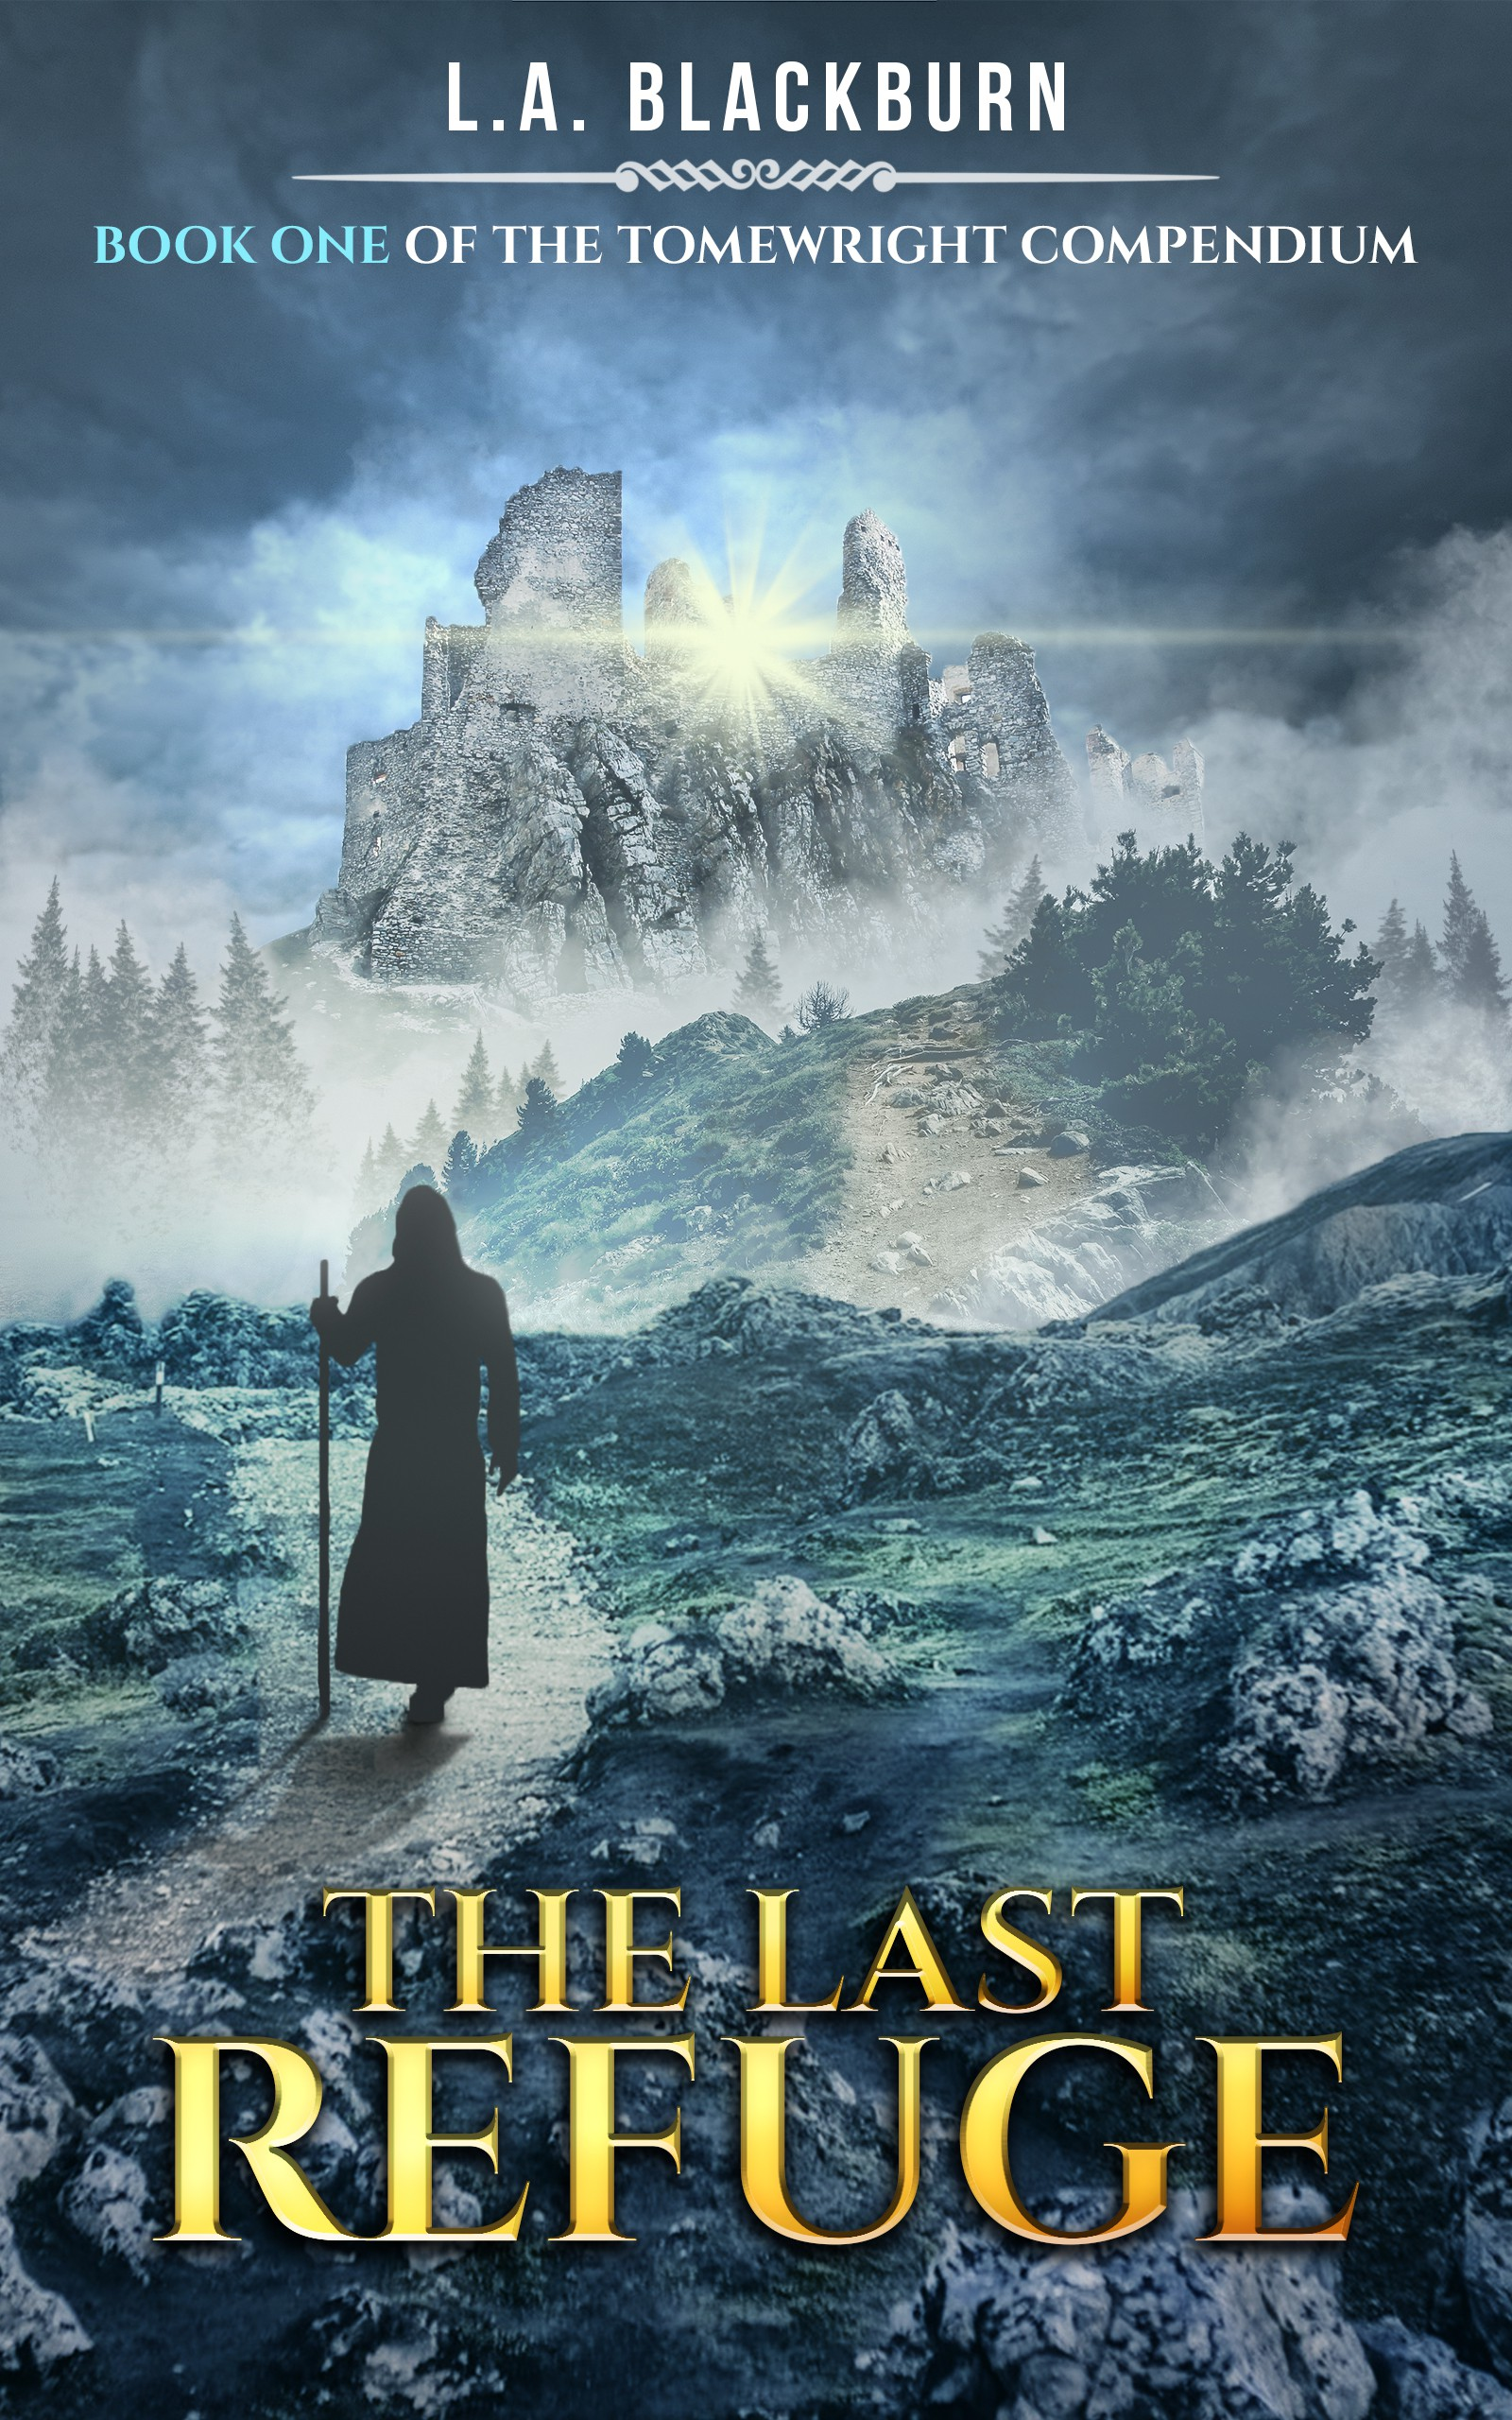 Bring this fantasy to life with a mystical ebook cover